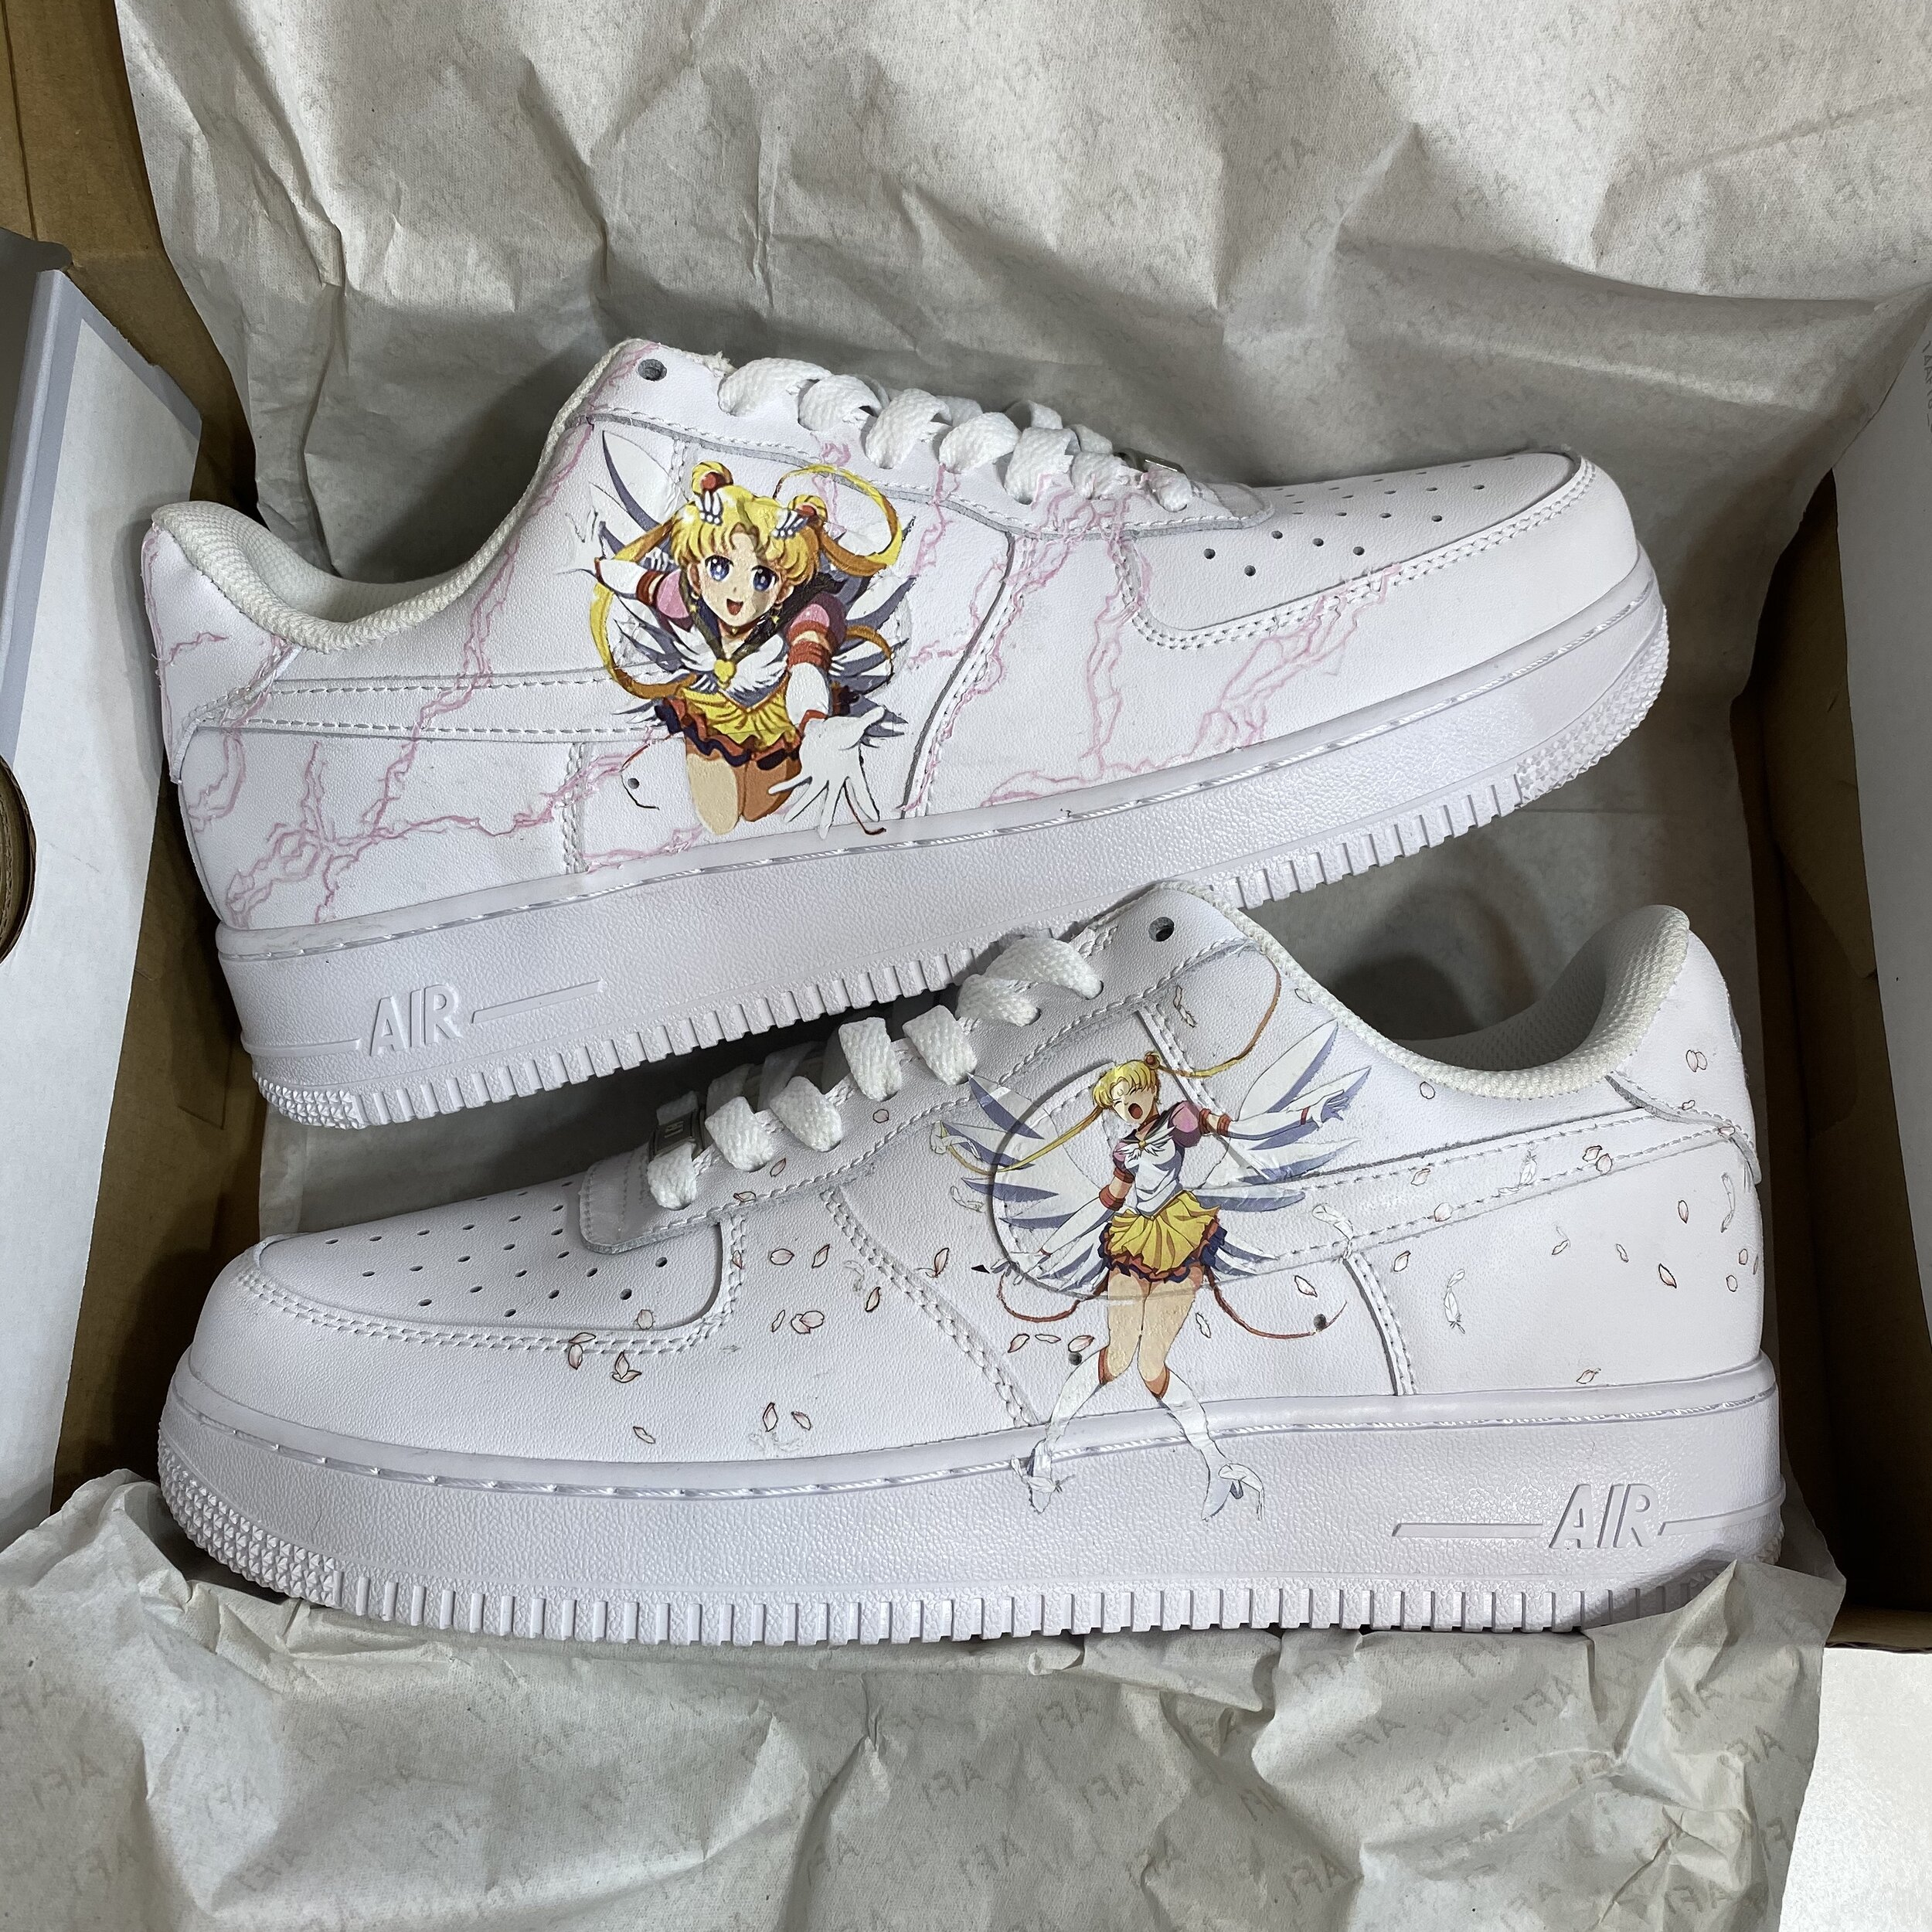 Revenge and Death Sailor Air Force 1